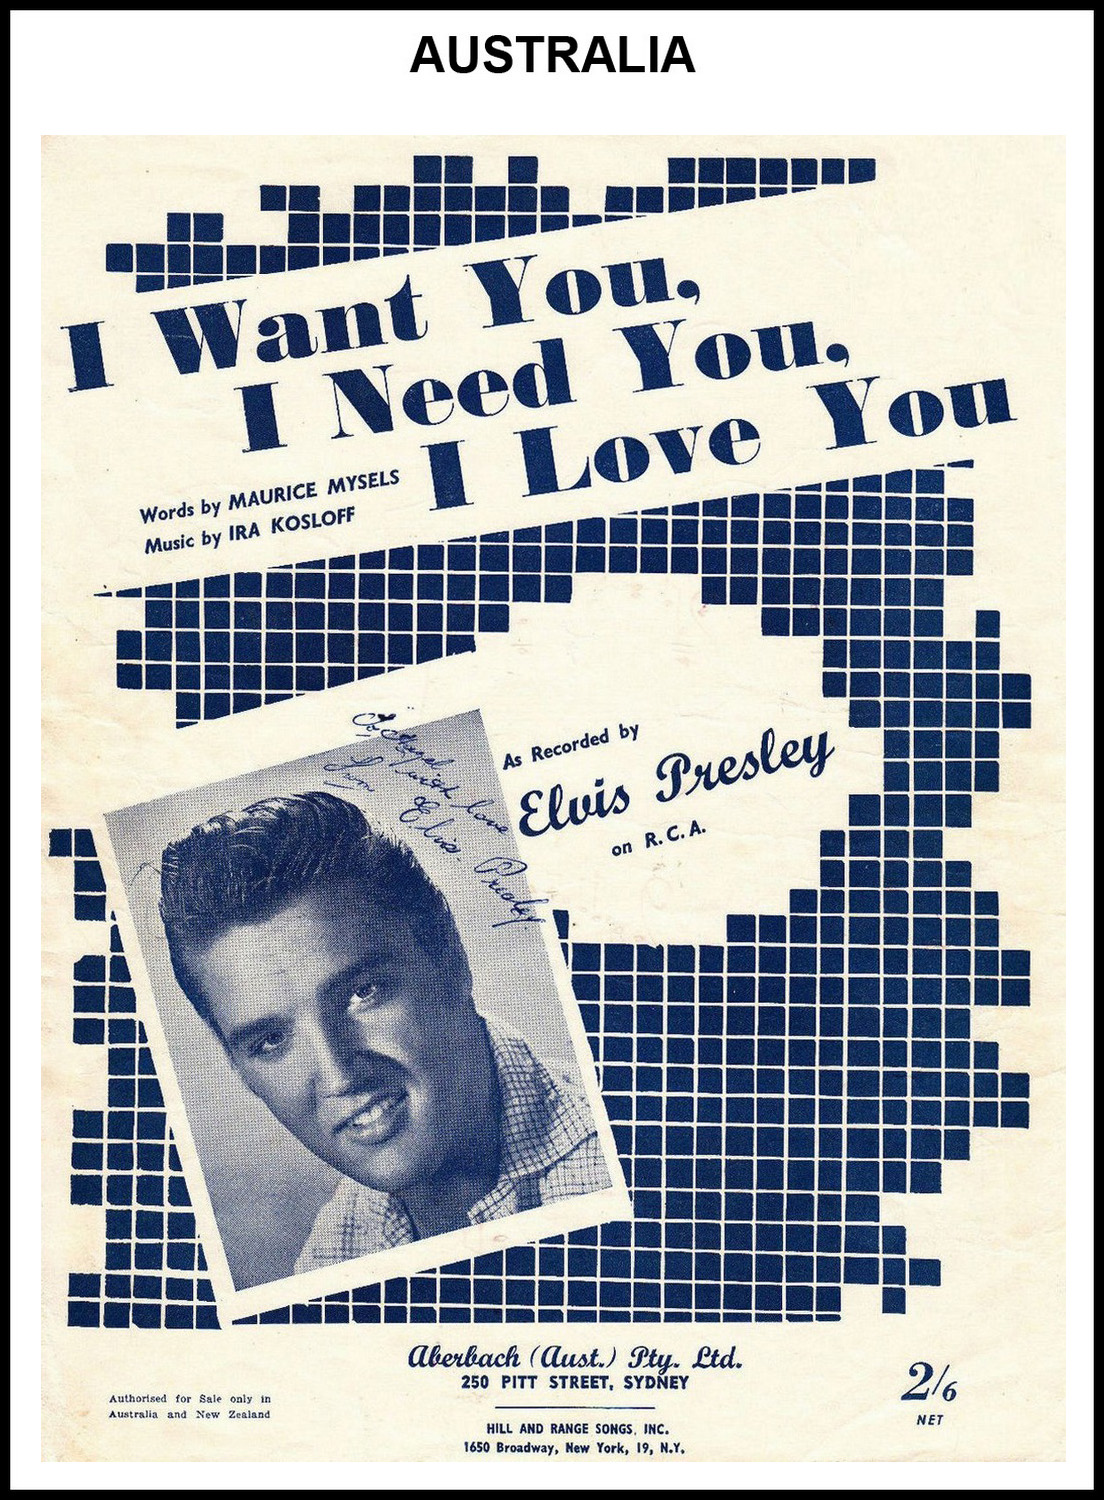 1956 - I Want You, I Need You, I Love You (Australia) 2 (CHRIS GILES COLLECTION)